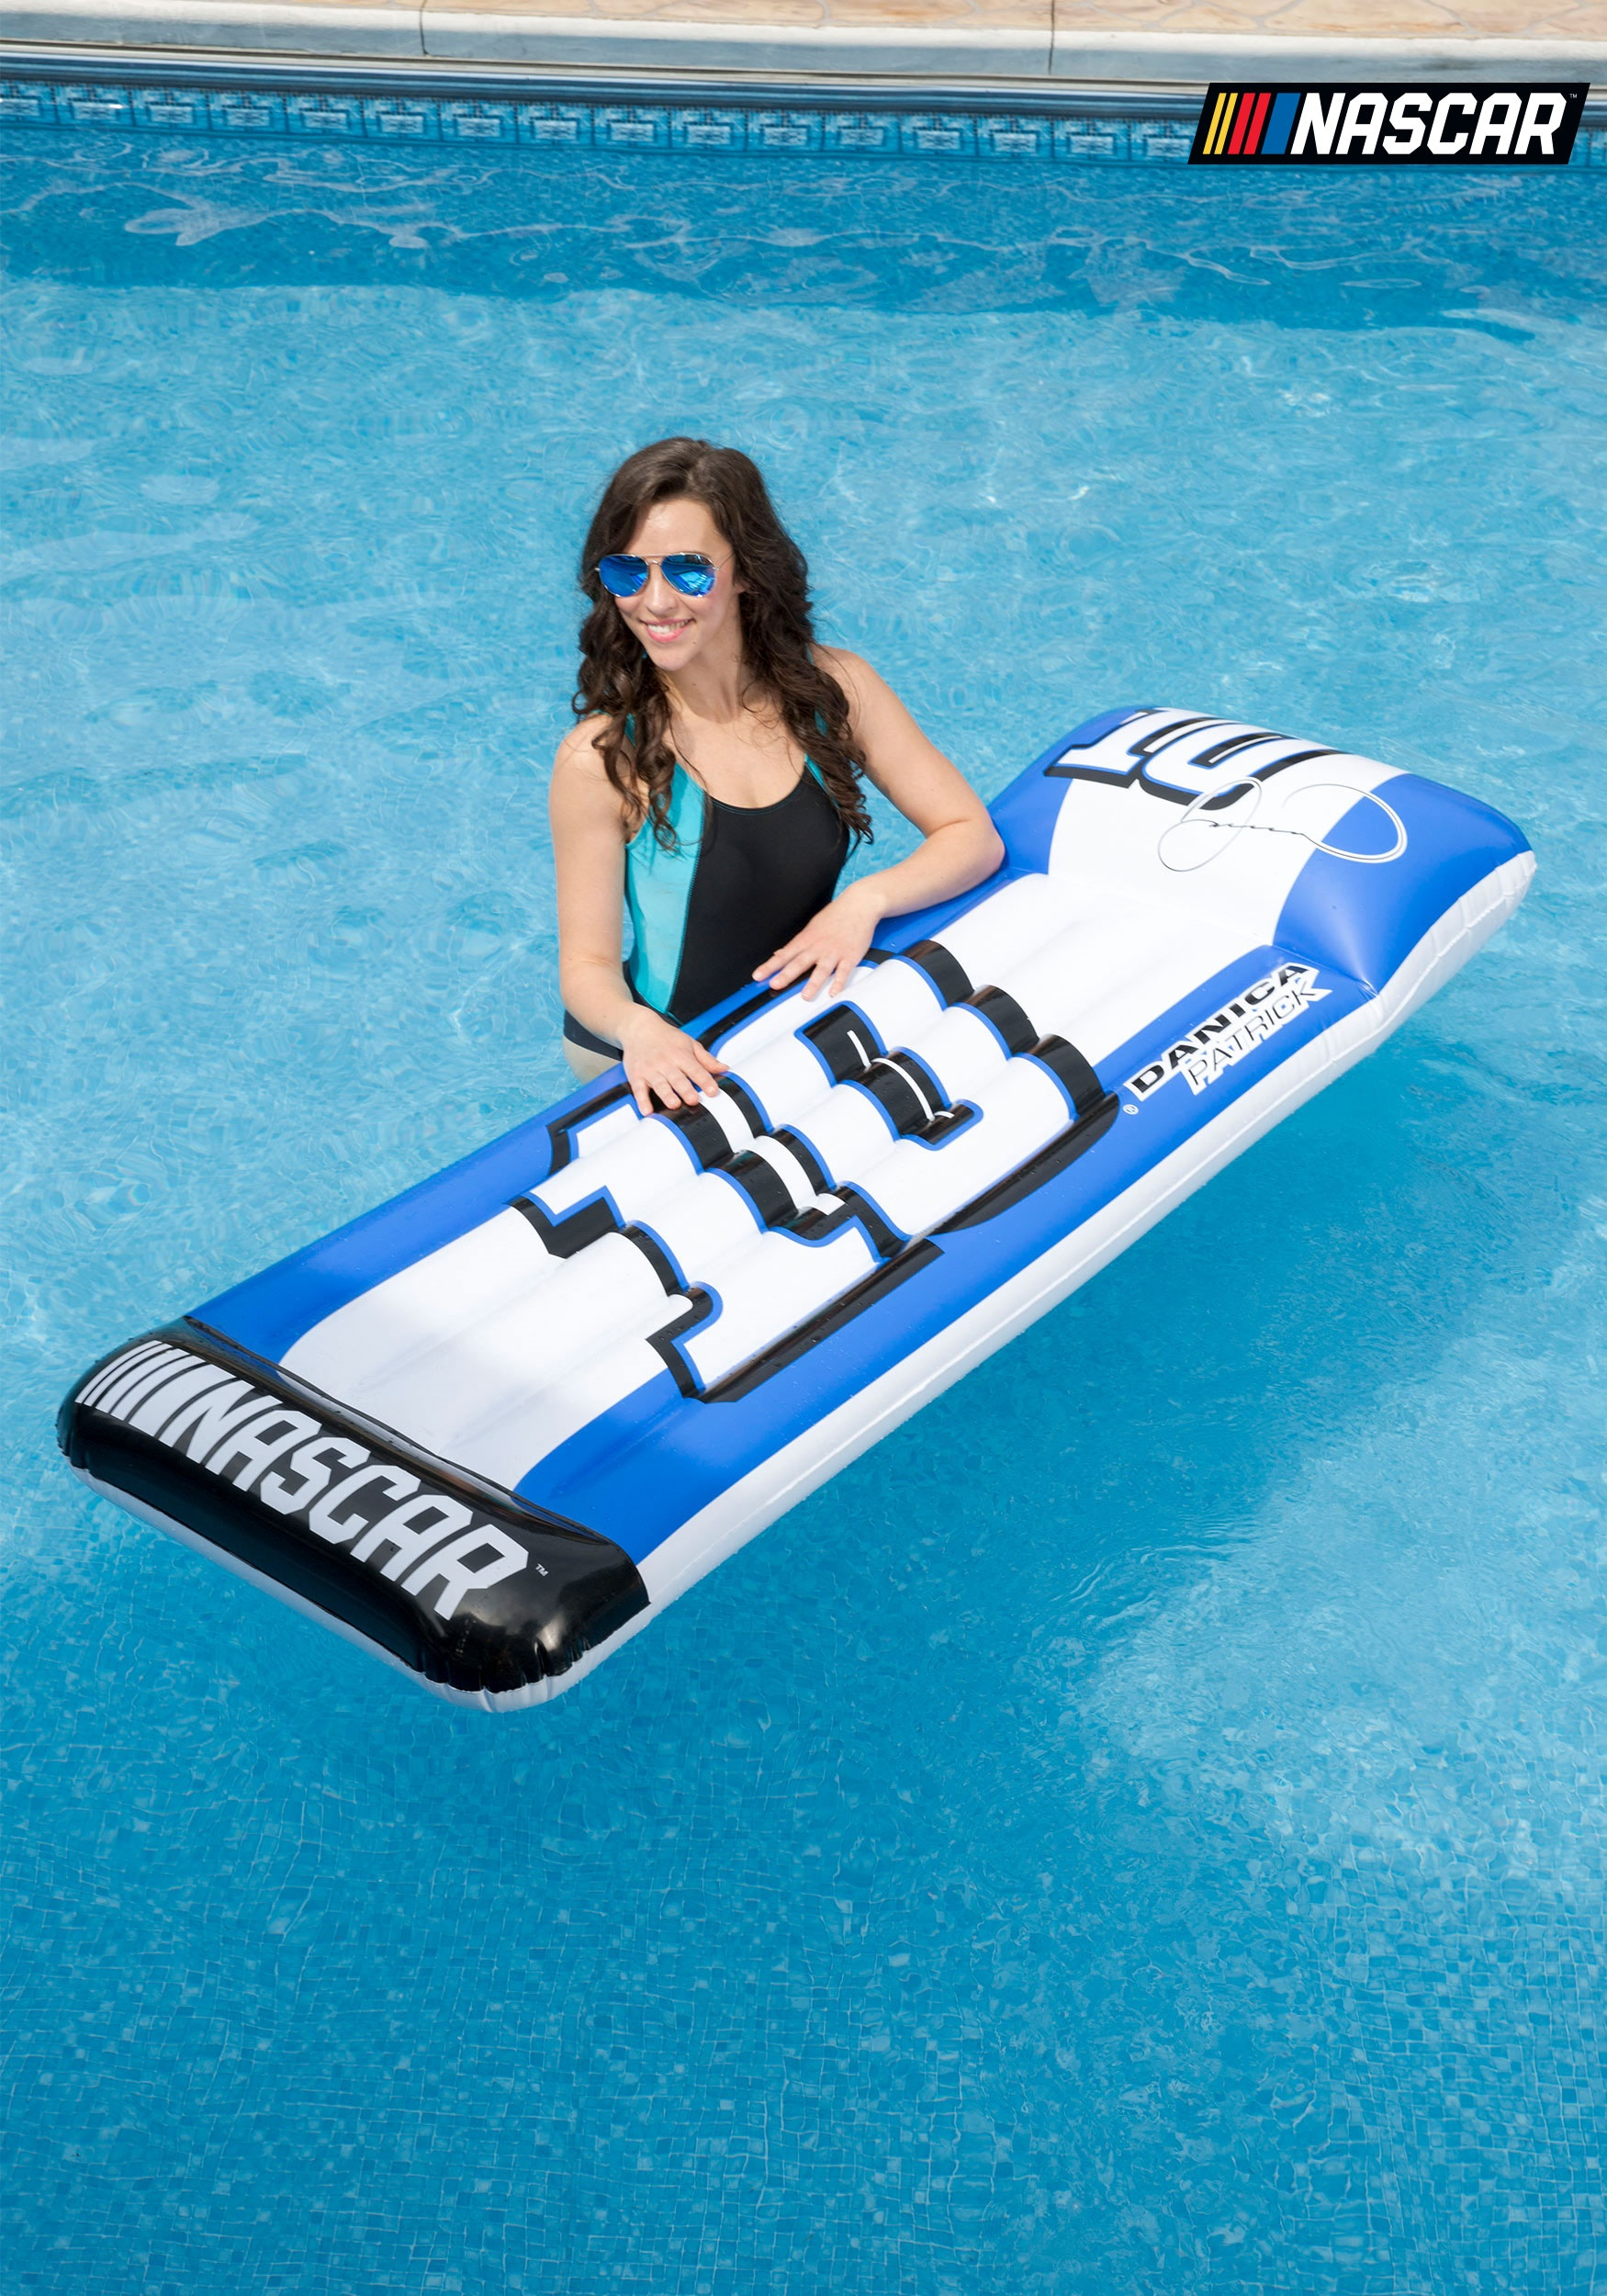 Danica Patrick Mat Pool Float From Nascar